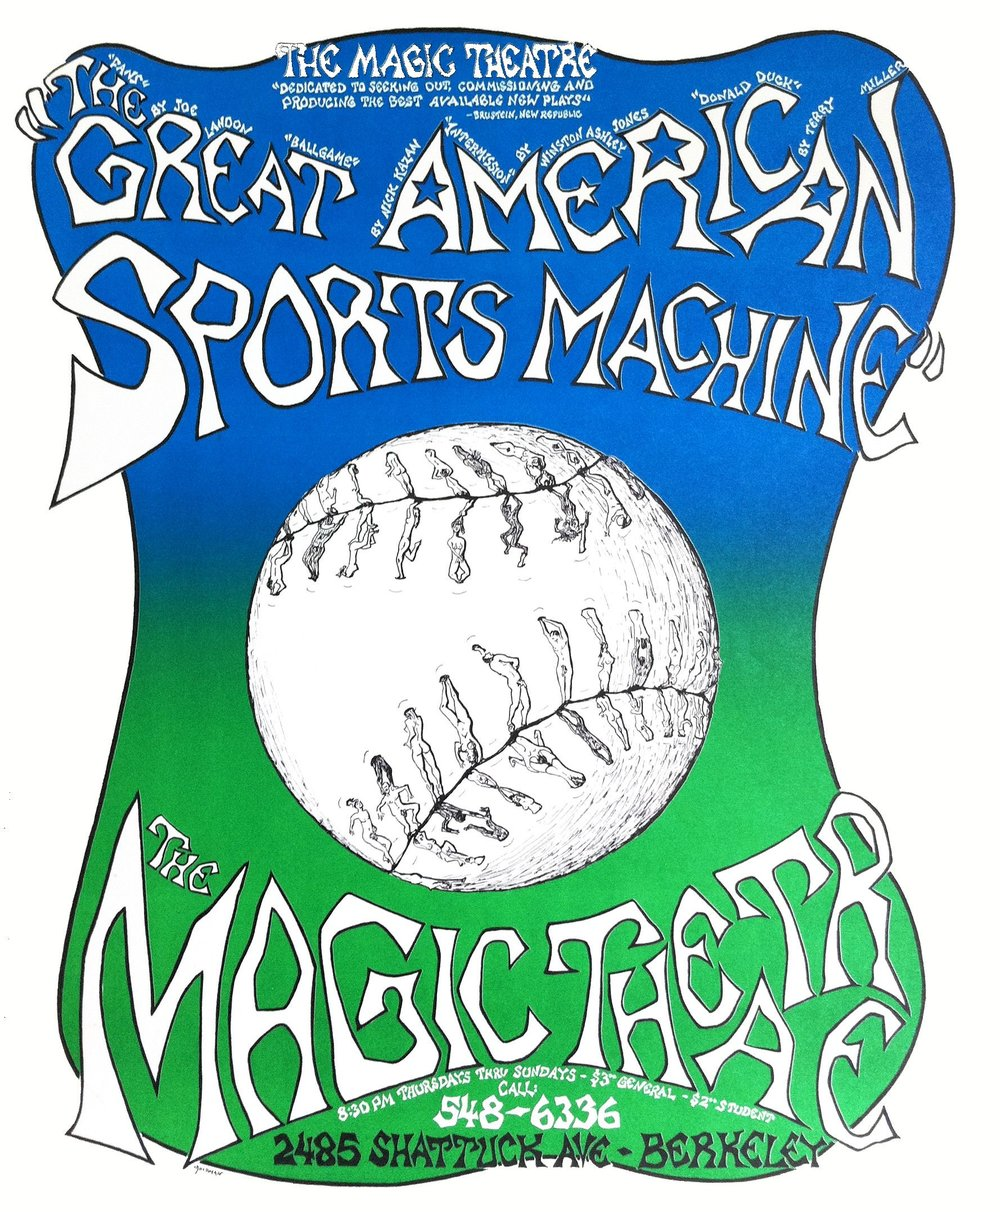 MT Poster Great Amer Sports Machine.jpg